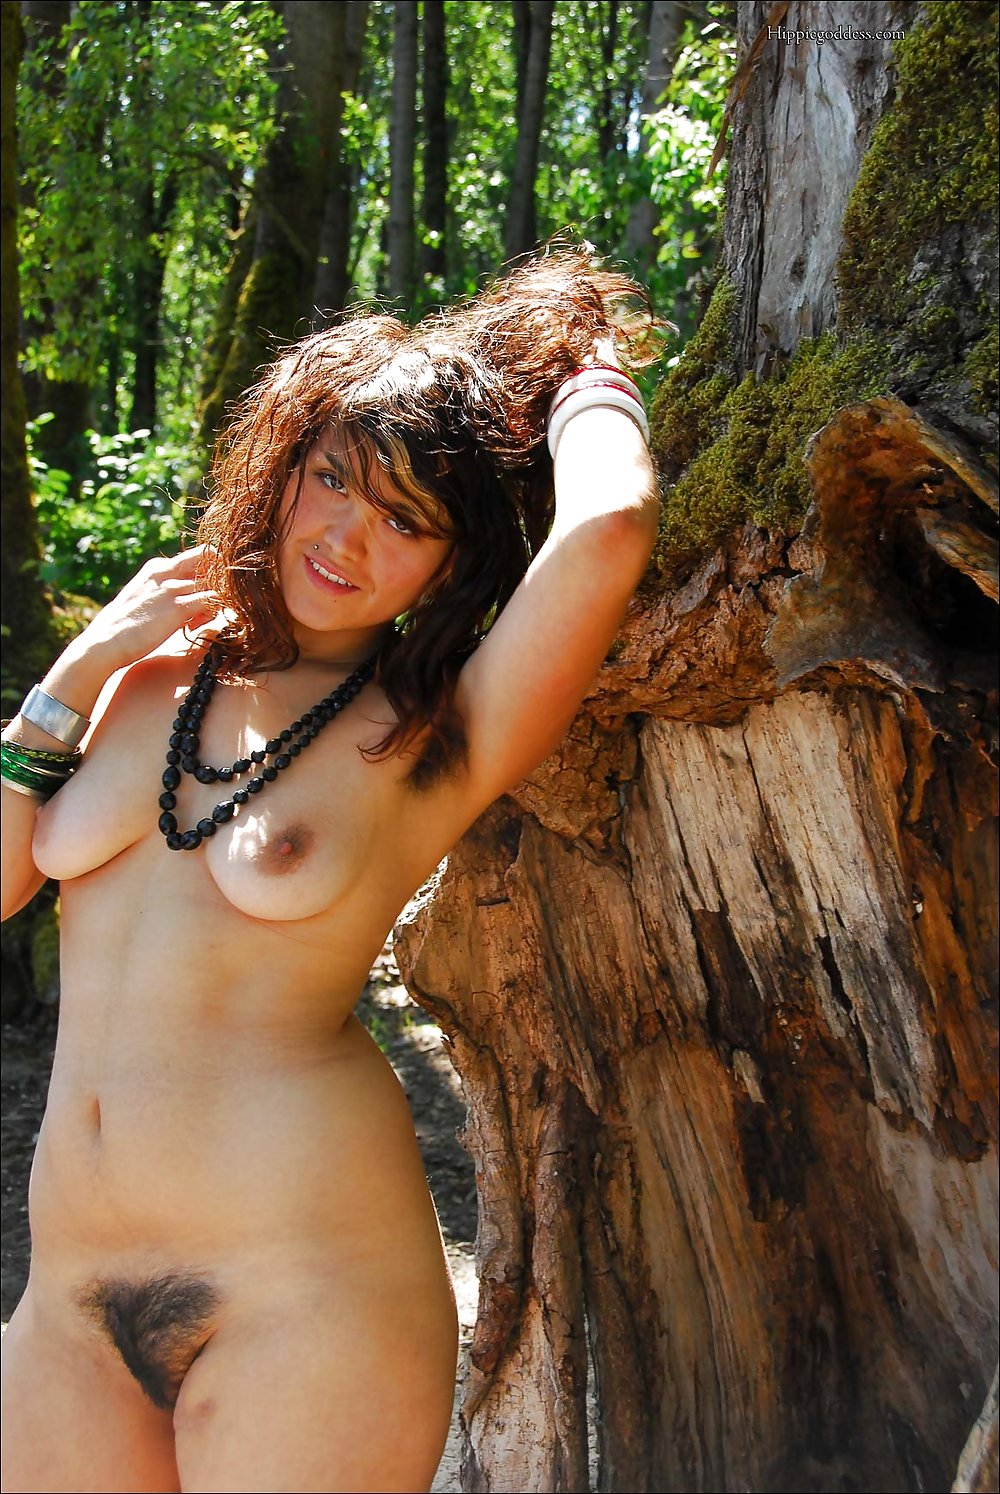 Hot hippie women nude #4